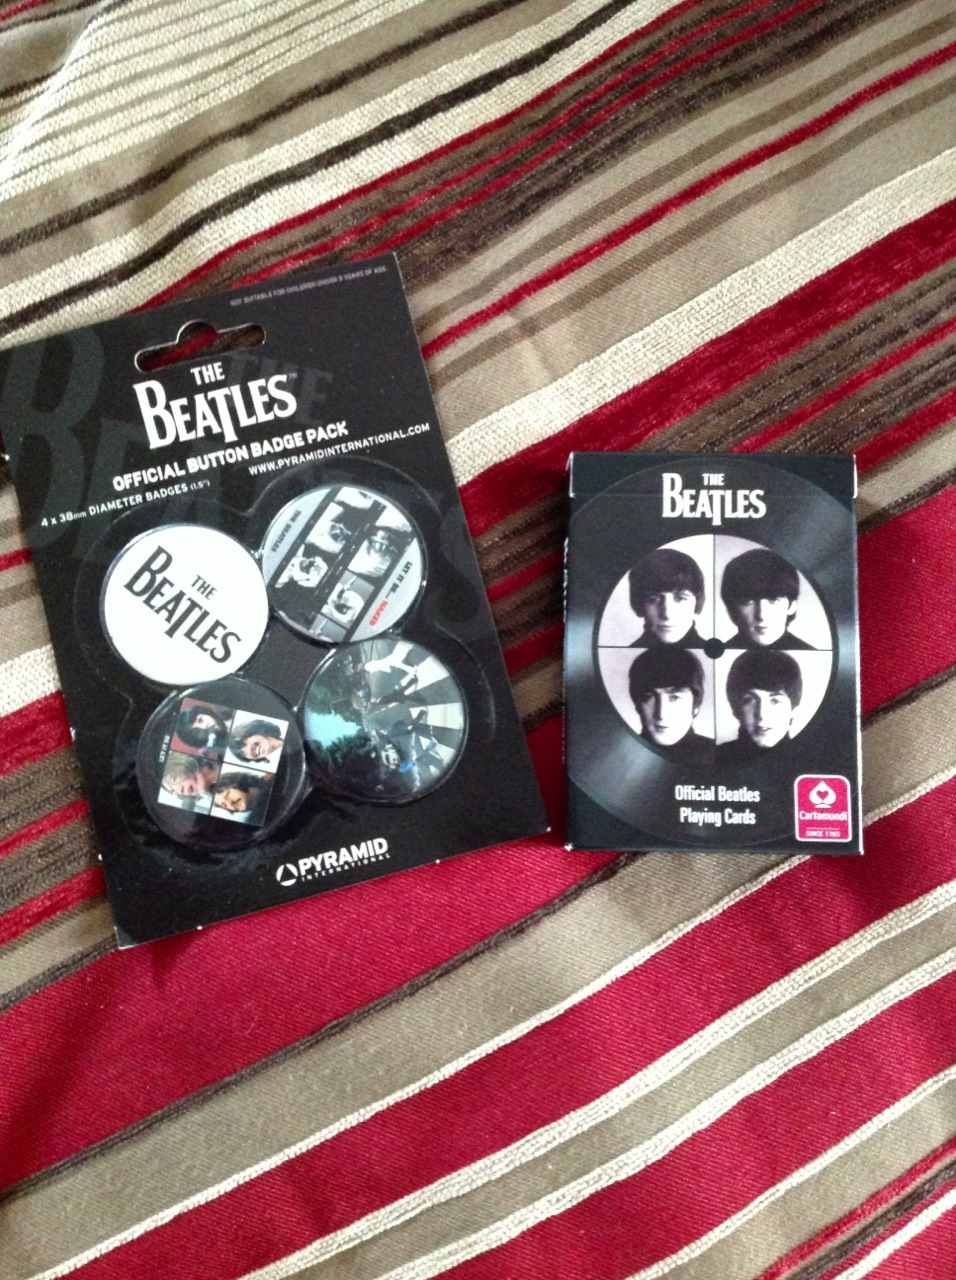 My little sister brought me souvenirs from her trip to London.  The Beatles merch!  …from Abbey Road.  (  ノ・◡・)ノ 彡 ┻┻